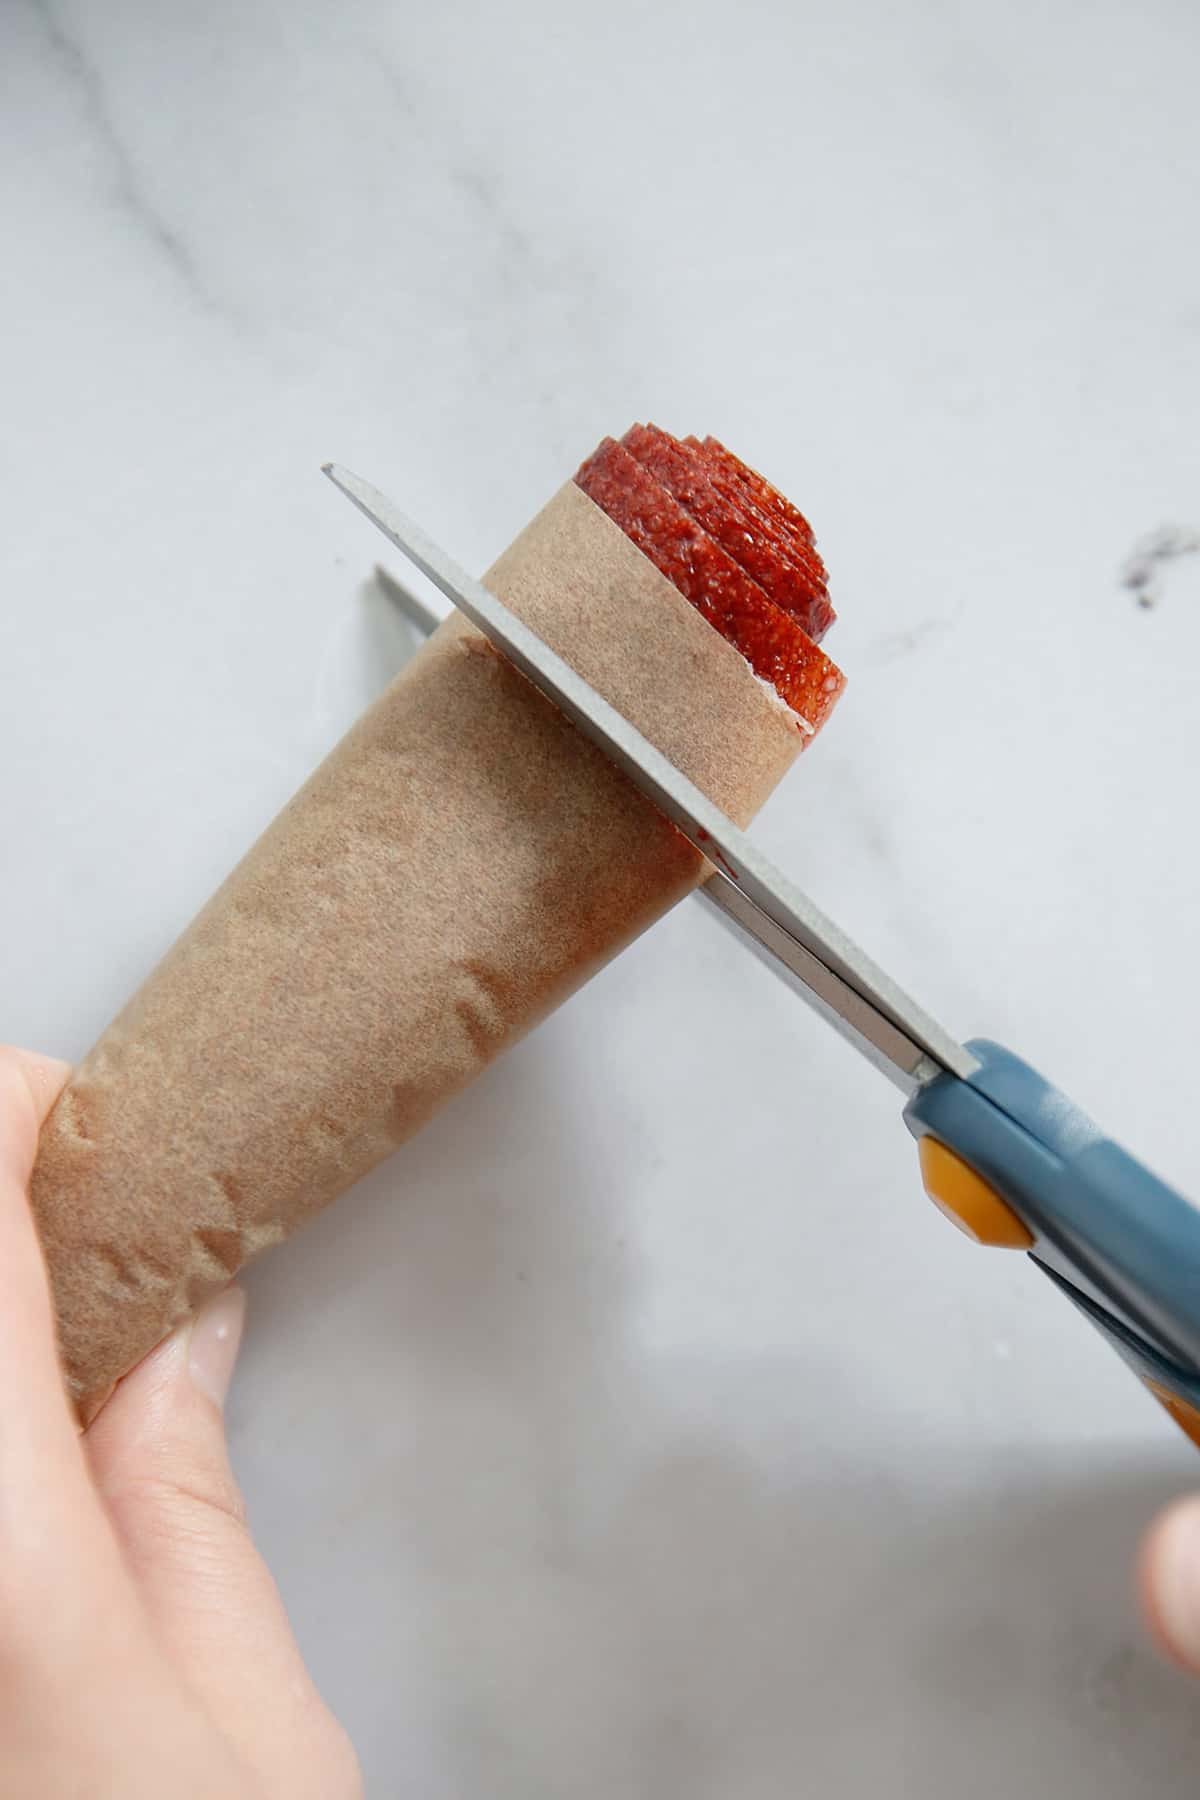 Cutting strawberry leather into strips with scissors